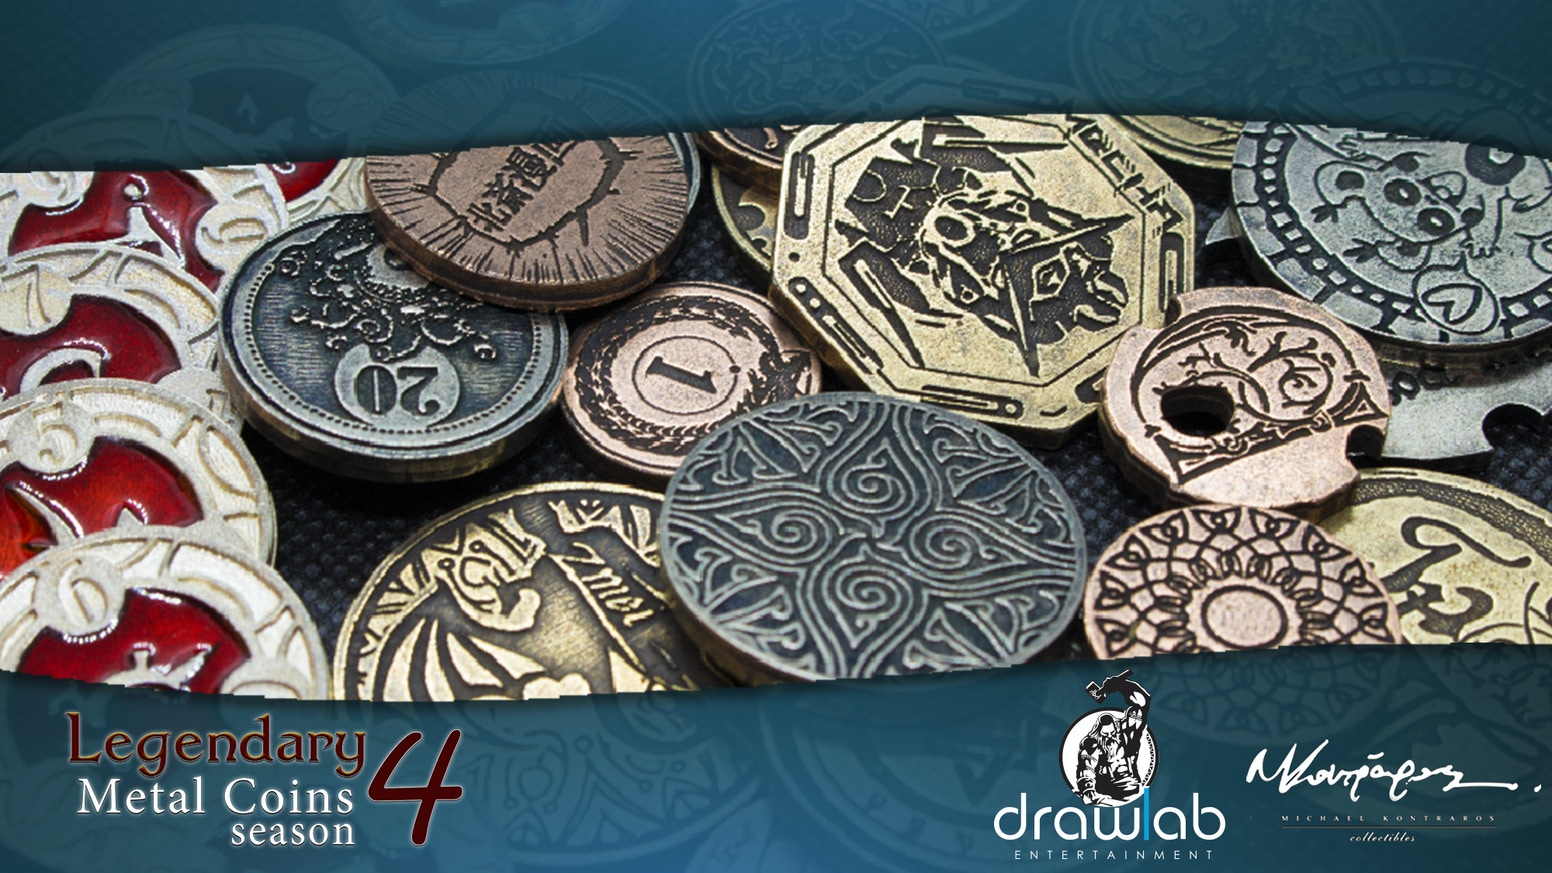 The biggest, heaviest and most premium gaming metal coins are back. Legendary Metal Coins Season 4 is here with many new ideas.